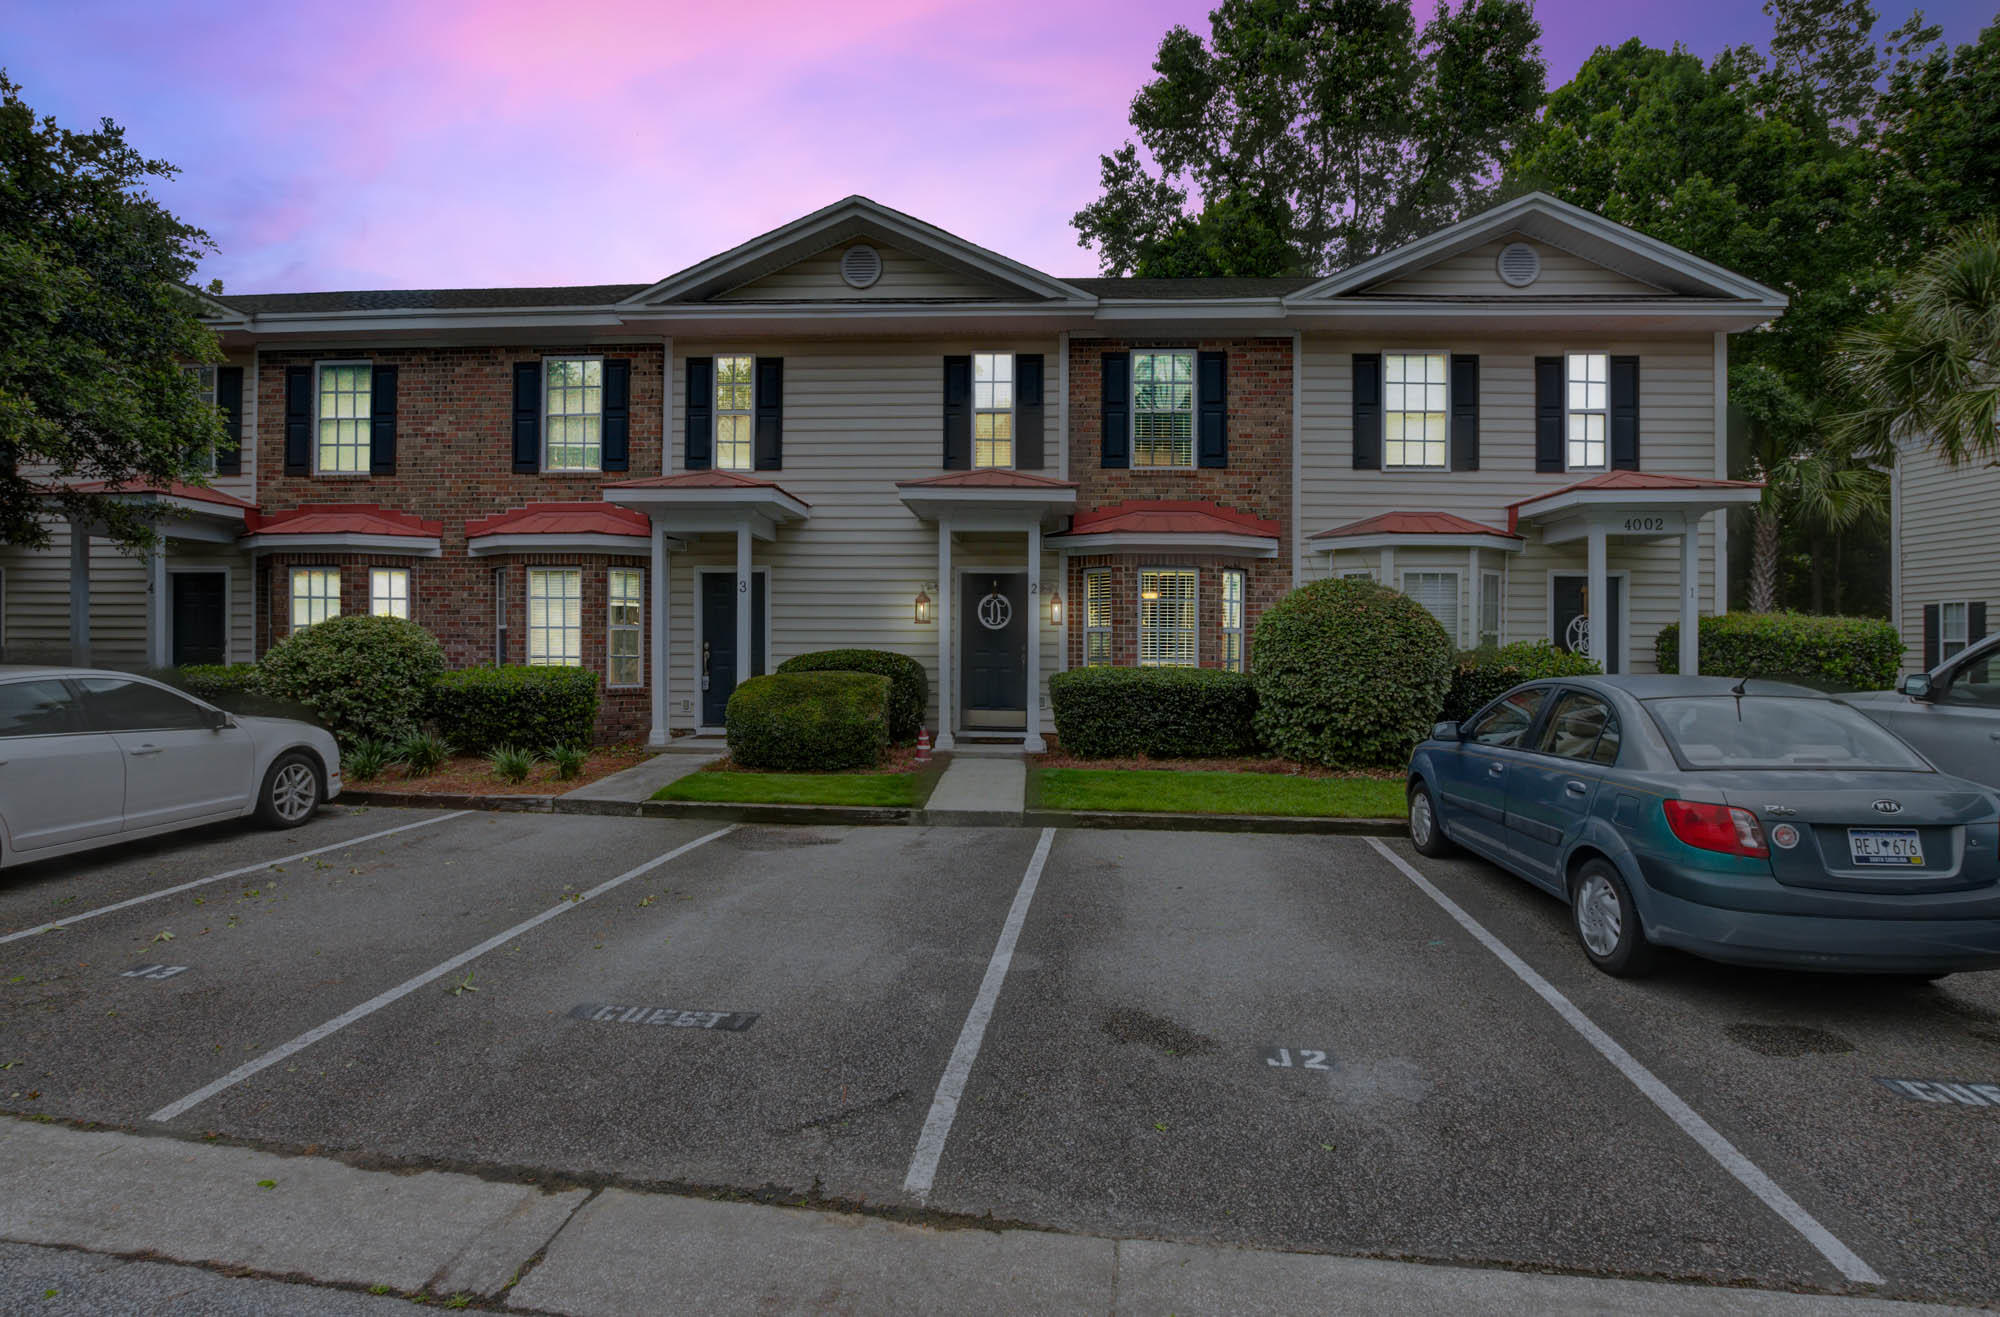 Radcliffe Place Homes For Sale - 4002 Radcliffe, Charleston, SC - 0